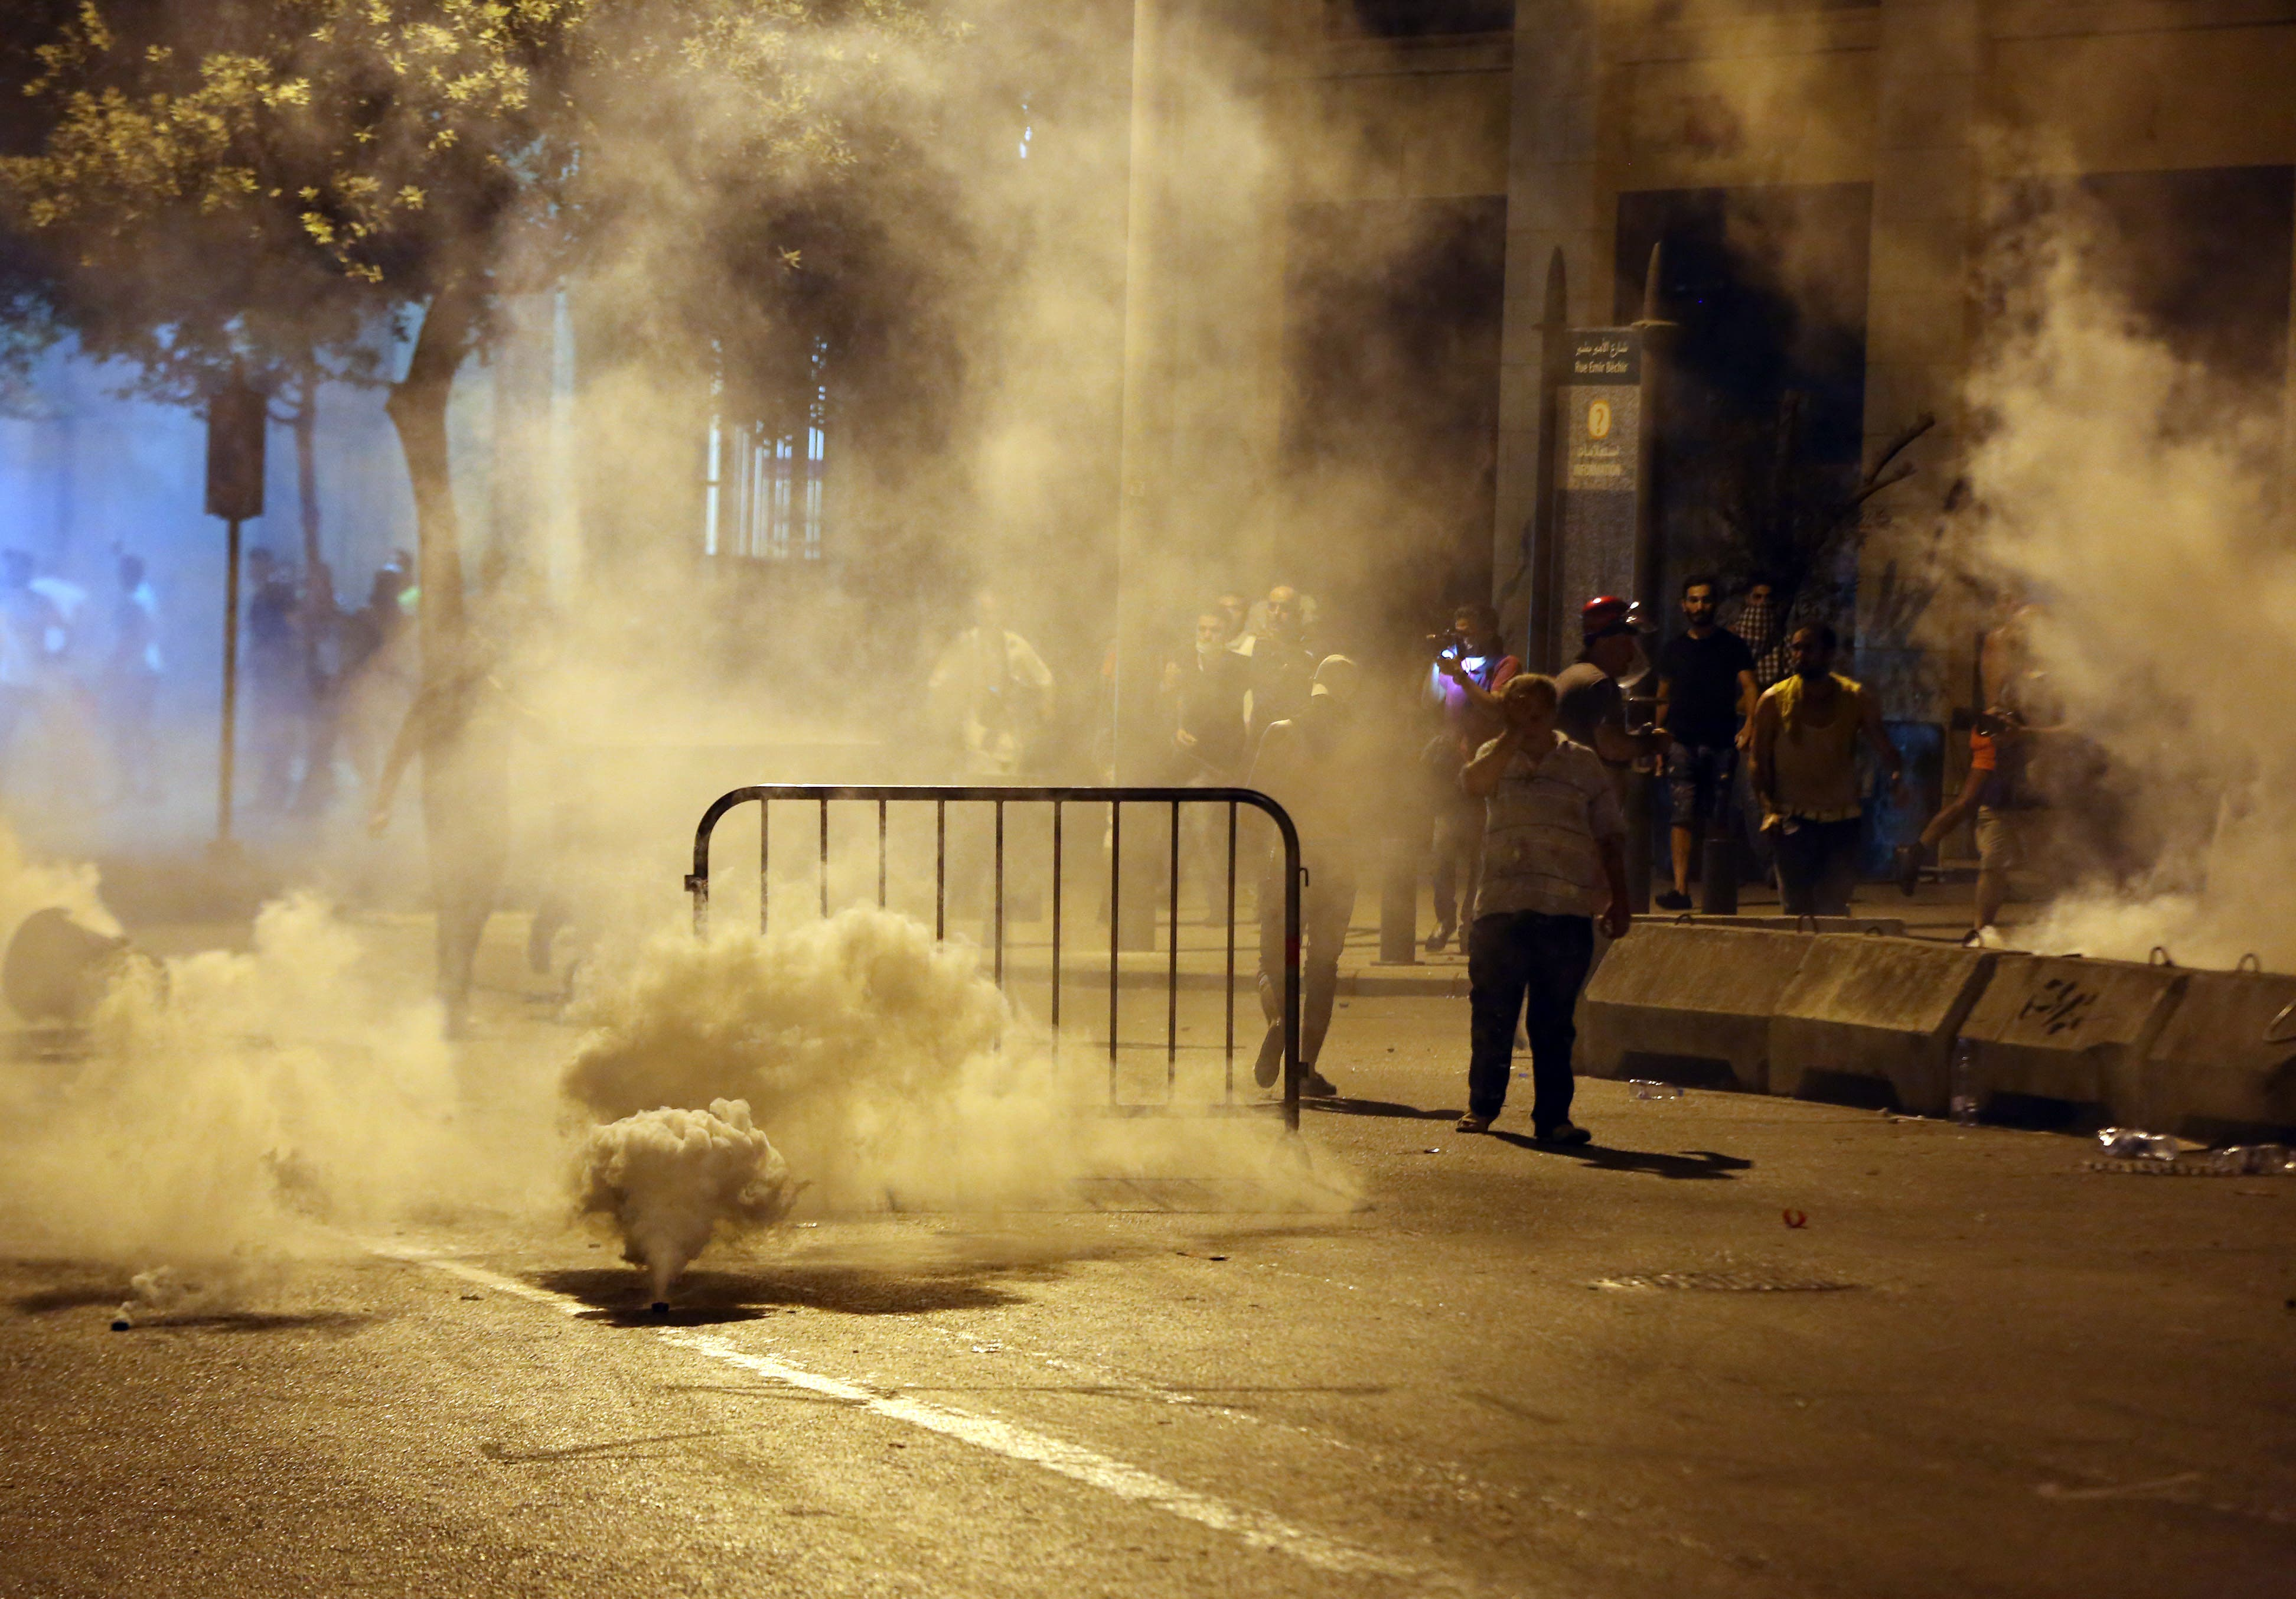 Lebanese riot police use tear gas during a protest against the ongoing trash crisis, in downtown Beirut, Lebanon, Saturday, Aug. 22, 2015. Police have unleashed tear gas and water cannons on thousands of Lebanese demonstrating in downtown Beirut against government corruption and political dysfunction that has left garbage accumulating in the streets in suburbs of the capital for over a month. (AP Photo/Bilal Hussein)